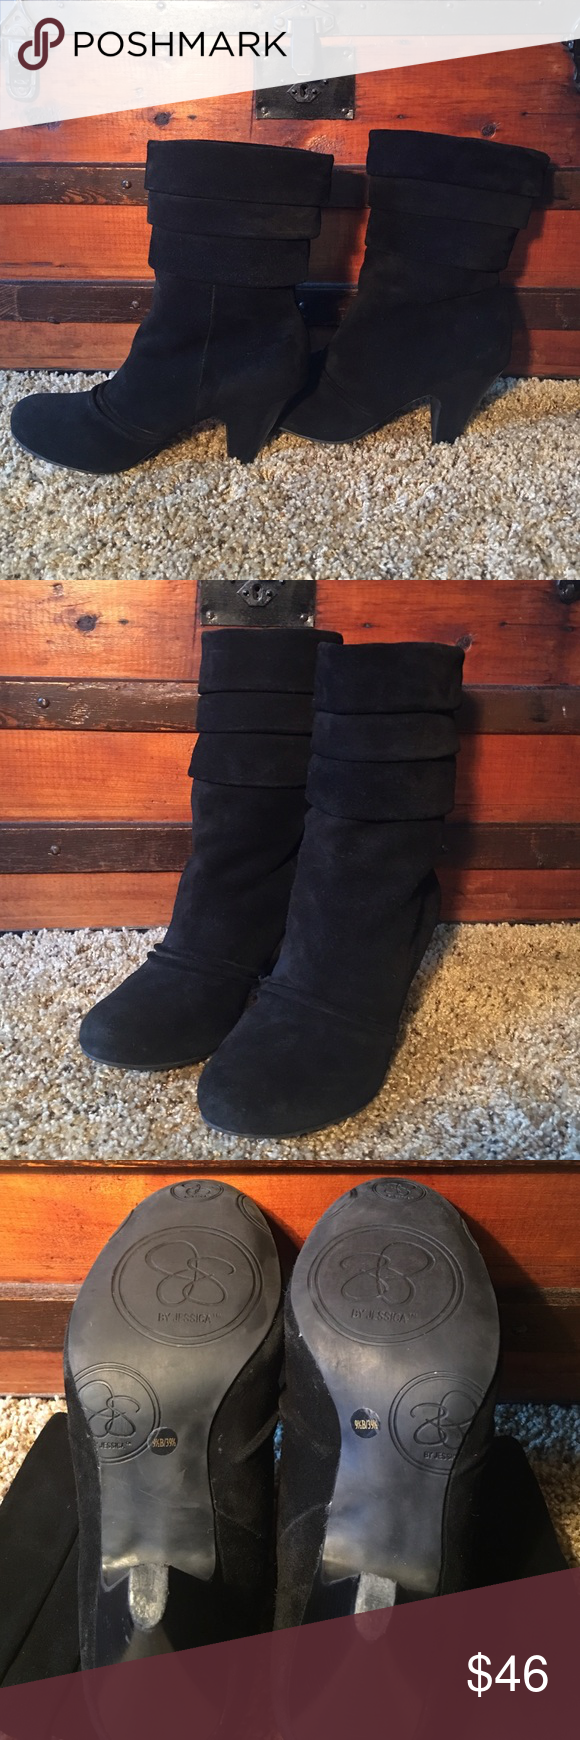 """Suede Boots Excellent used condition. No defects. Black suede, mid calf, slouch boots with a 3"""" heel. Shoe box not available. Jessica Simpson Shoes Heeled Boots"""